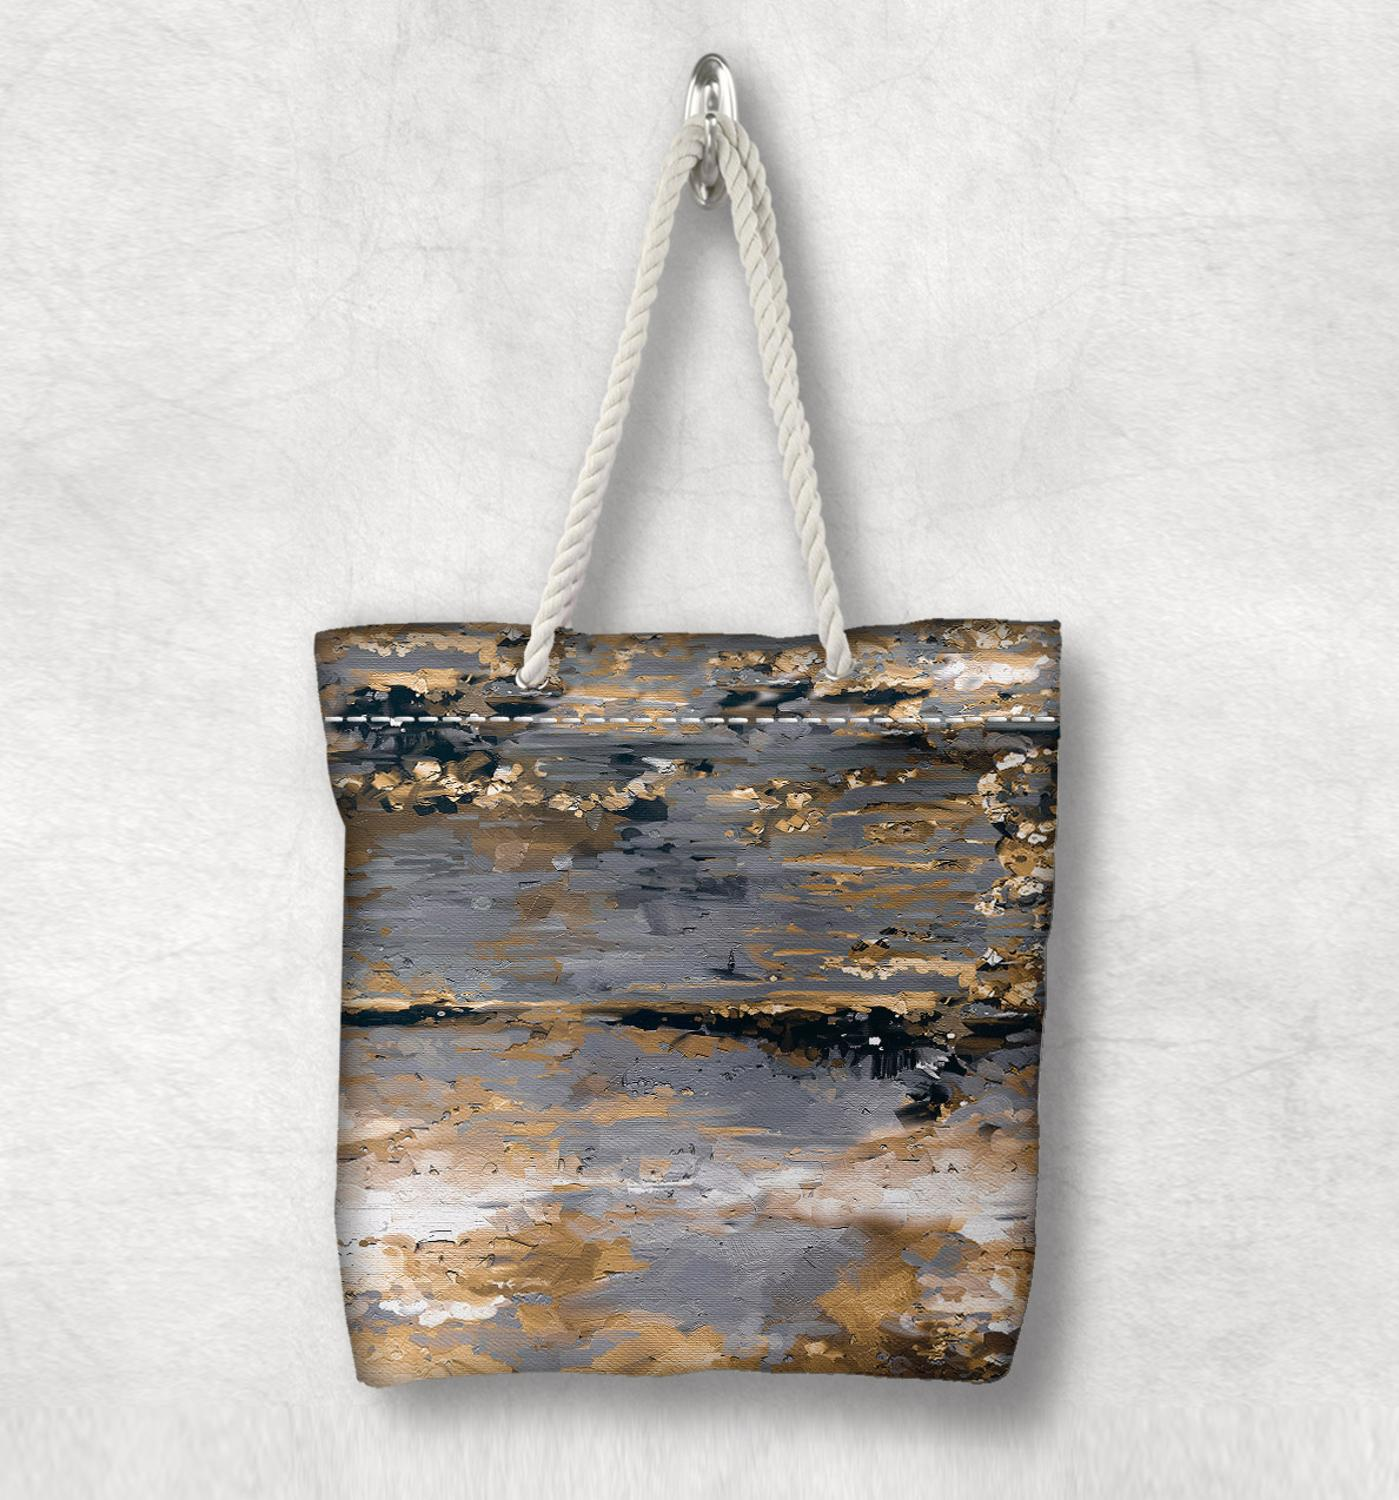 Else Yellow Gray Brown Abstract Painting New Fashion White Rope Handle Canvas Bag Cotton Canvas Zippered Tote Bag Shoulder Bag